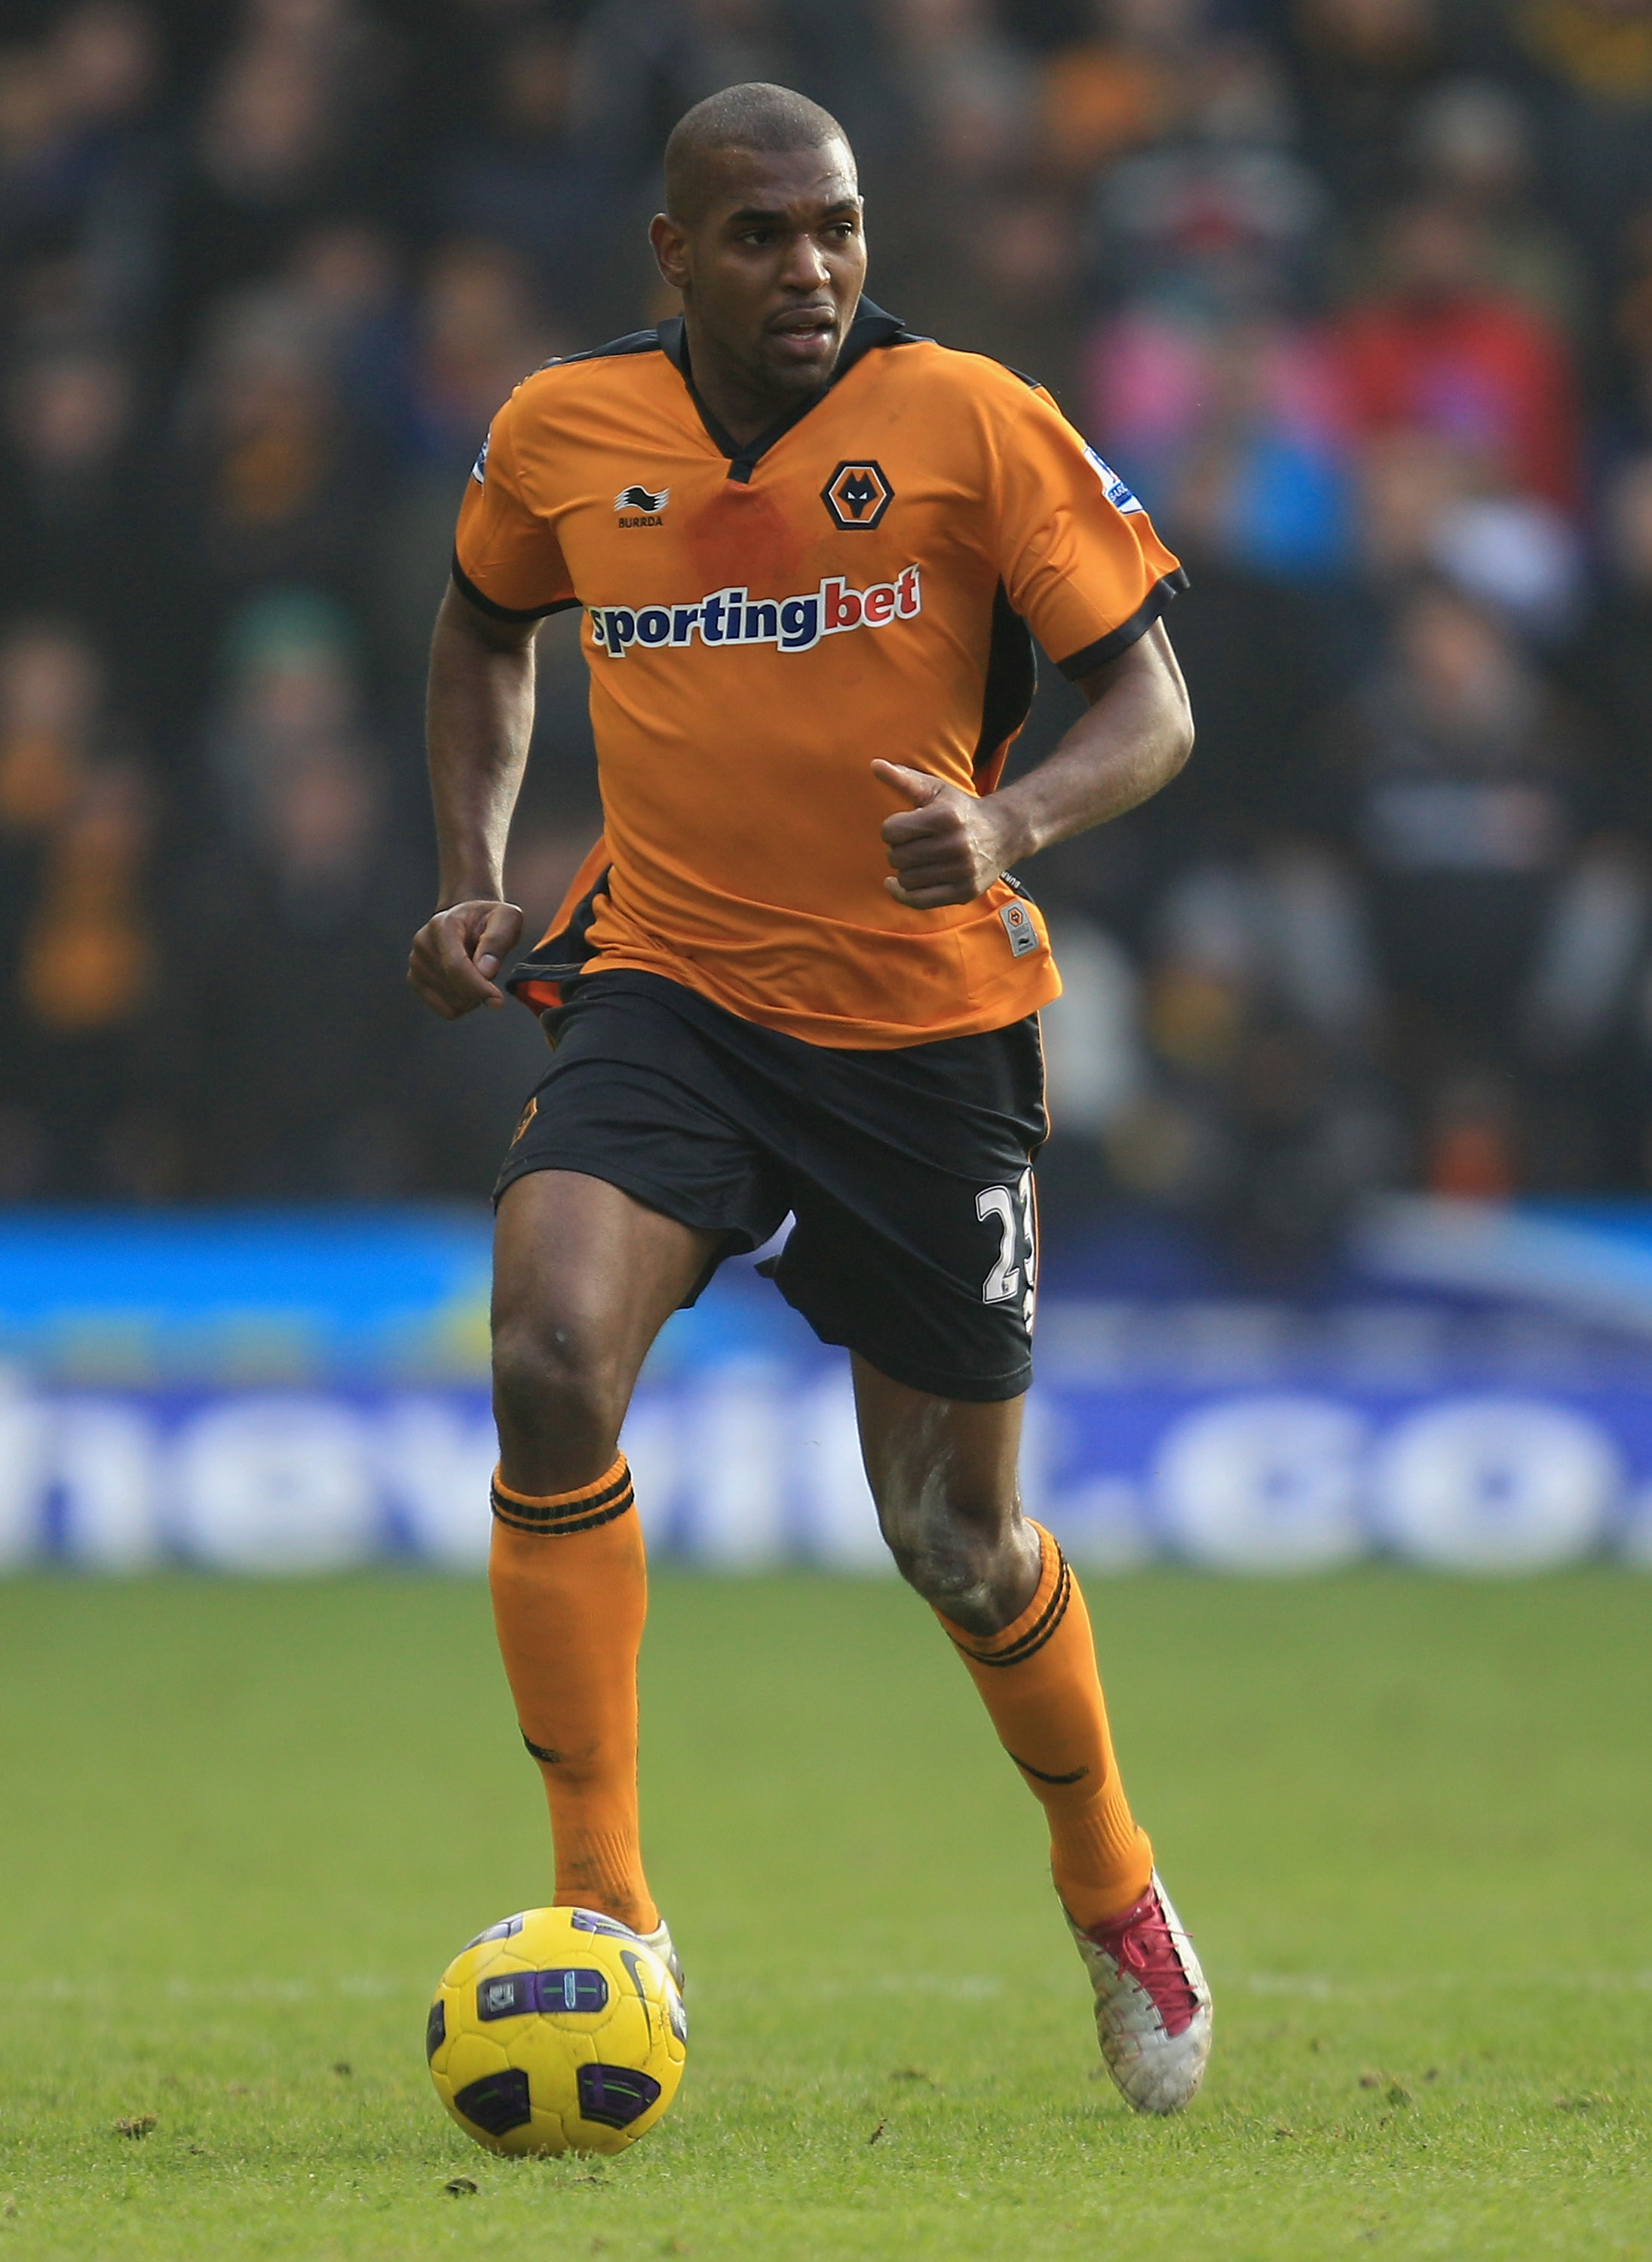 WOLVERHAMPTON, ENGLAND - JANUARY 22:  Ronald Zubar of Wolverhampton Wanderers in action during the Barclays Premier League match between Wolverhampton Wanderers and Liverpool at Molineux on January 22, 2011 in Wolverhampton, England.  (Photo by Mark Thomp